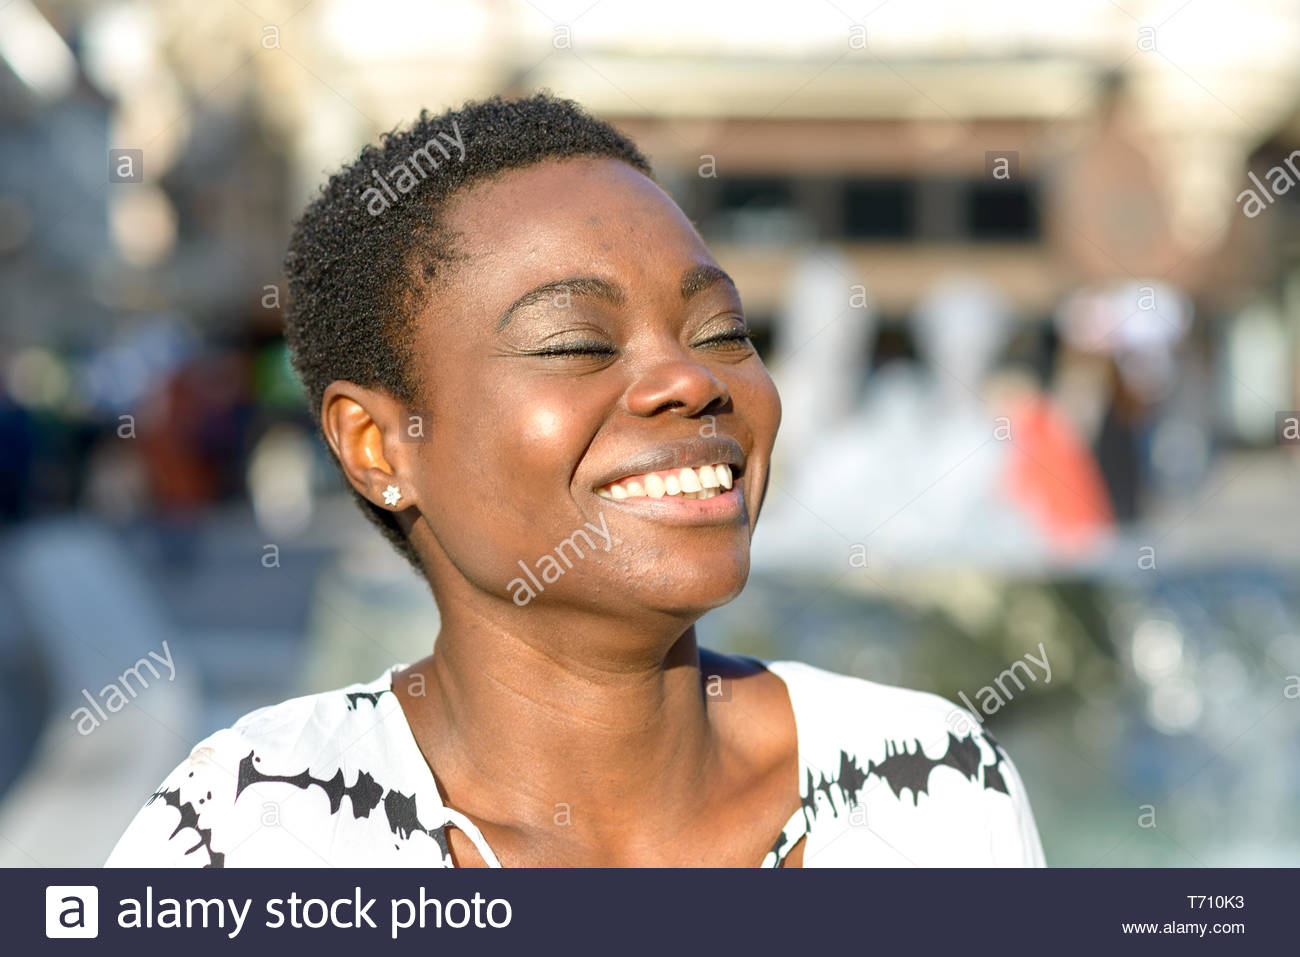 Lively young African woman with a beaming smile - Stock Image